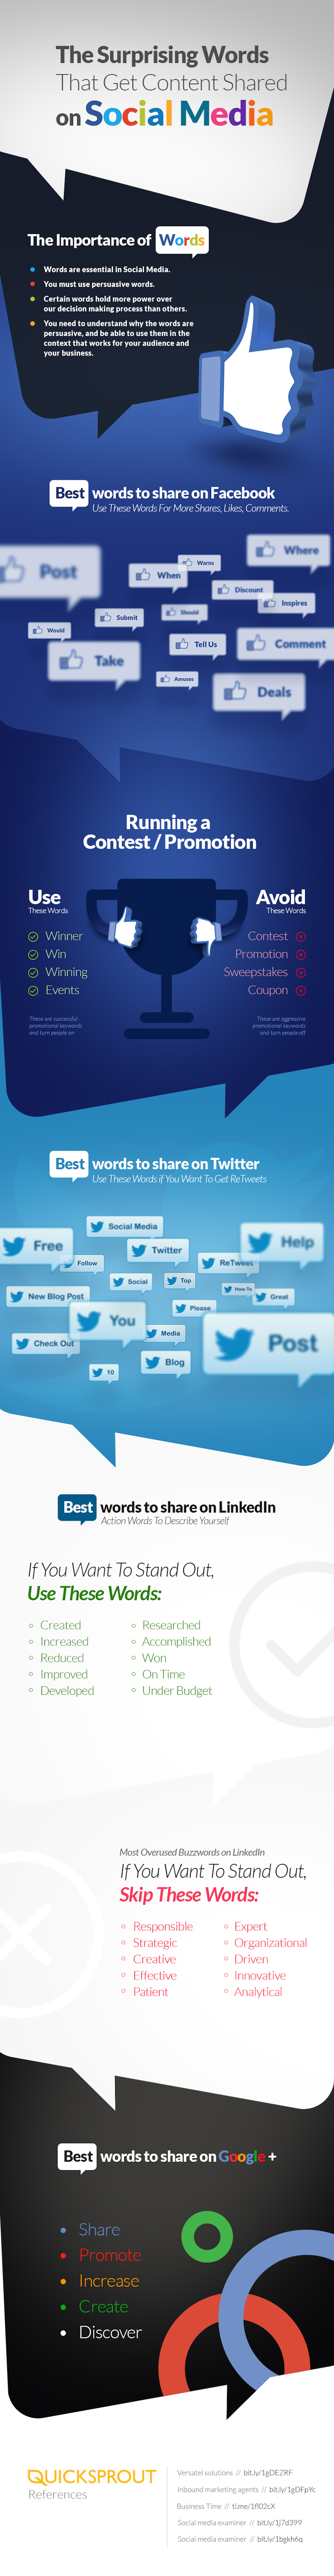 Surprising words that get content shared infographic